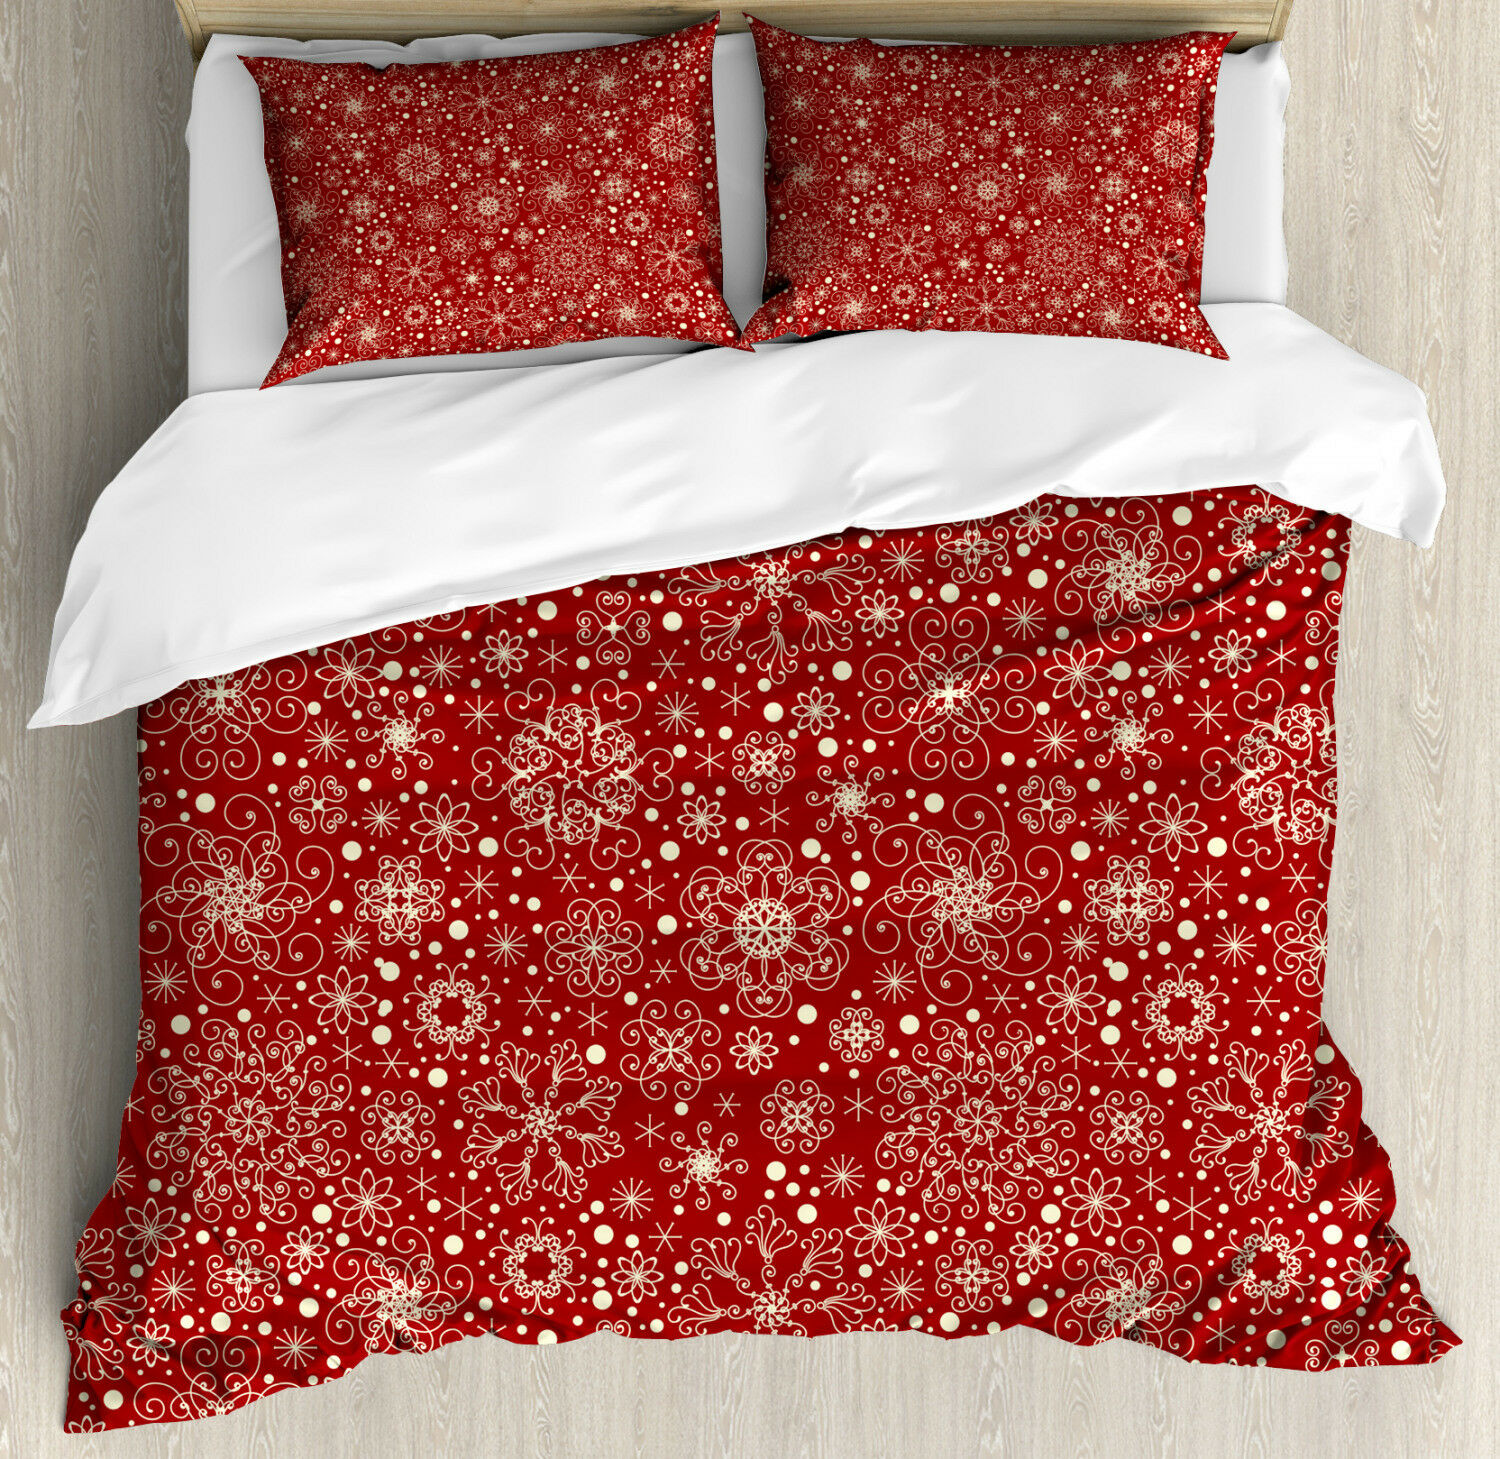 Red Duvet Cover Set with Pillow Shams Filigree Style Snowflakes Print